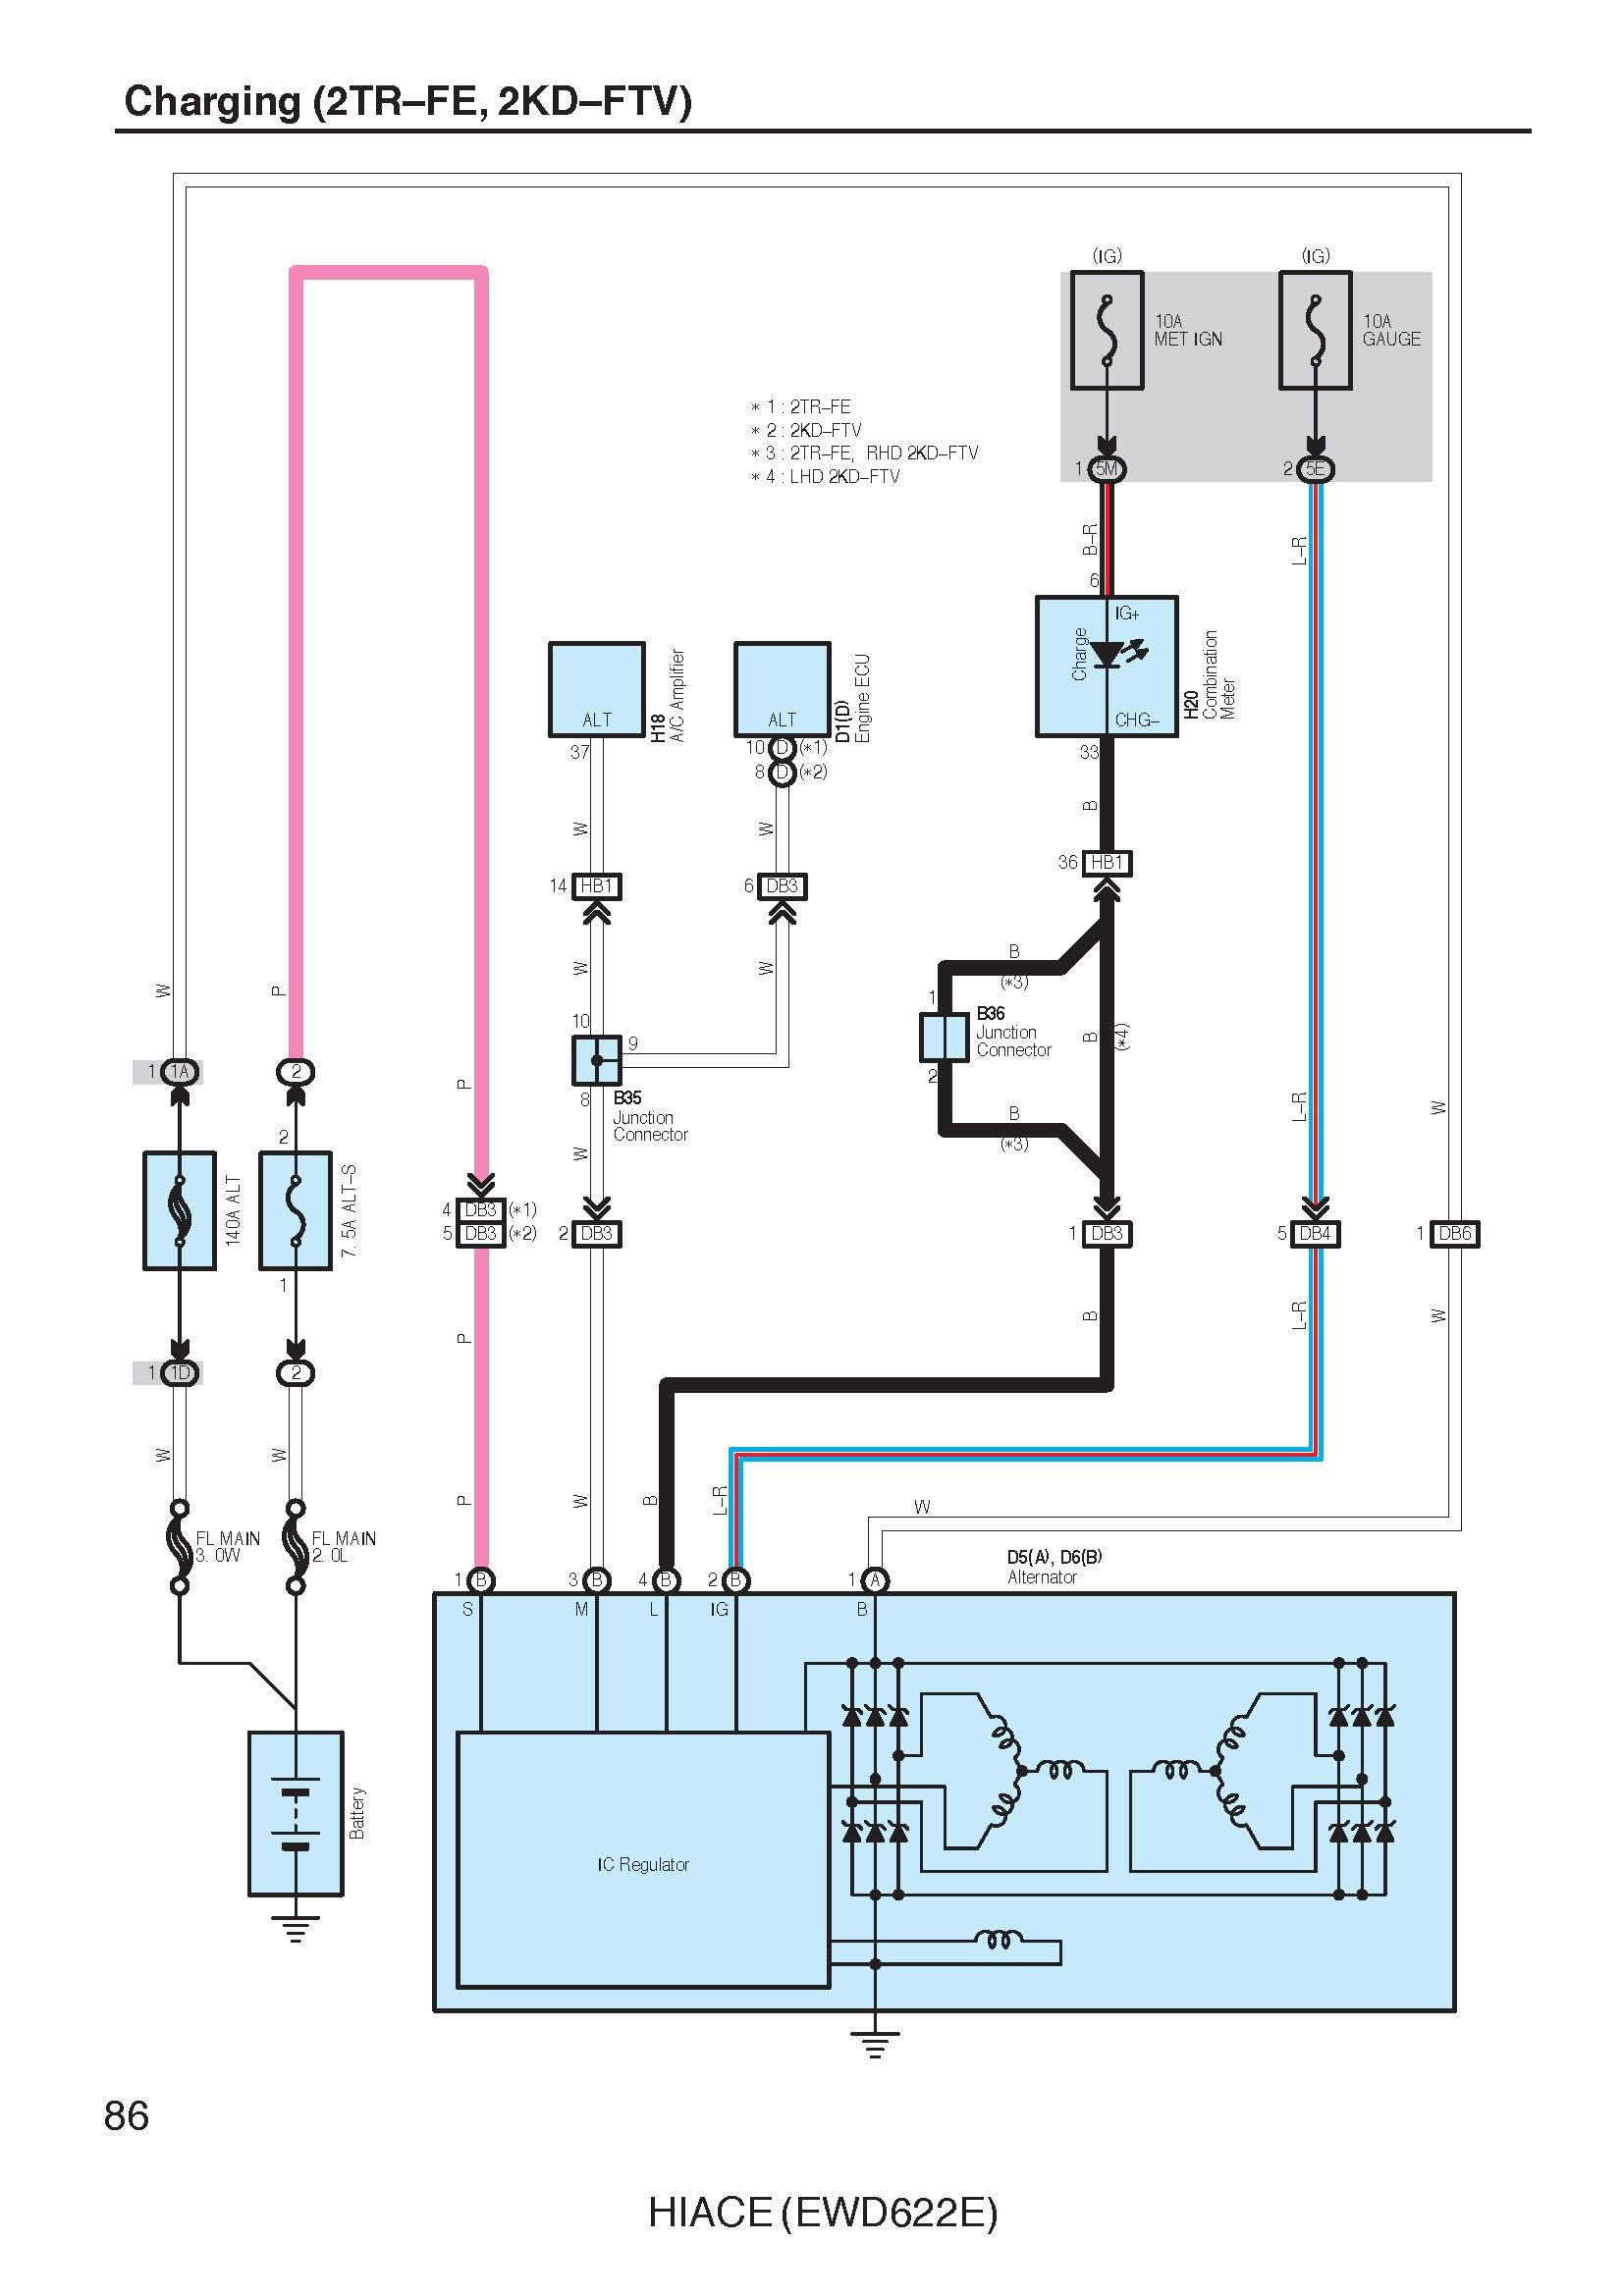 Admirable Wiring Diagrams Pdf Wiring Diagram Data Schema Wiring Cloud Funidienstapotheekhoekschewaardnl